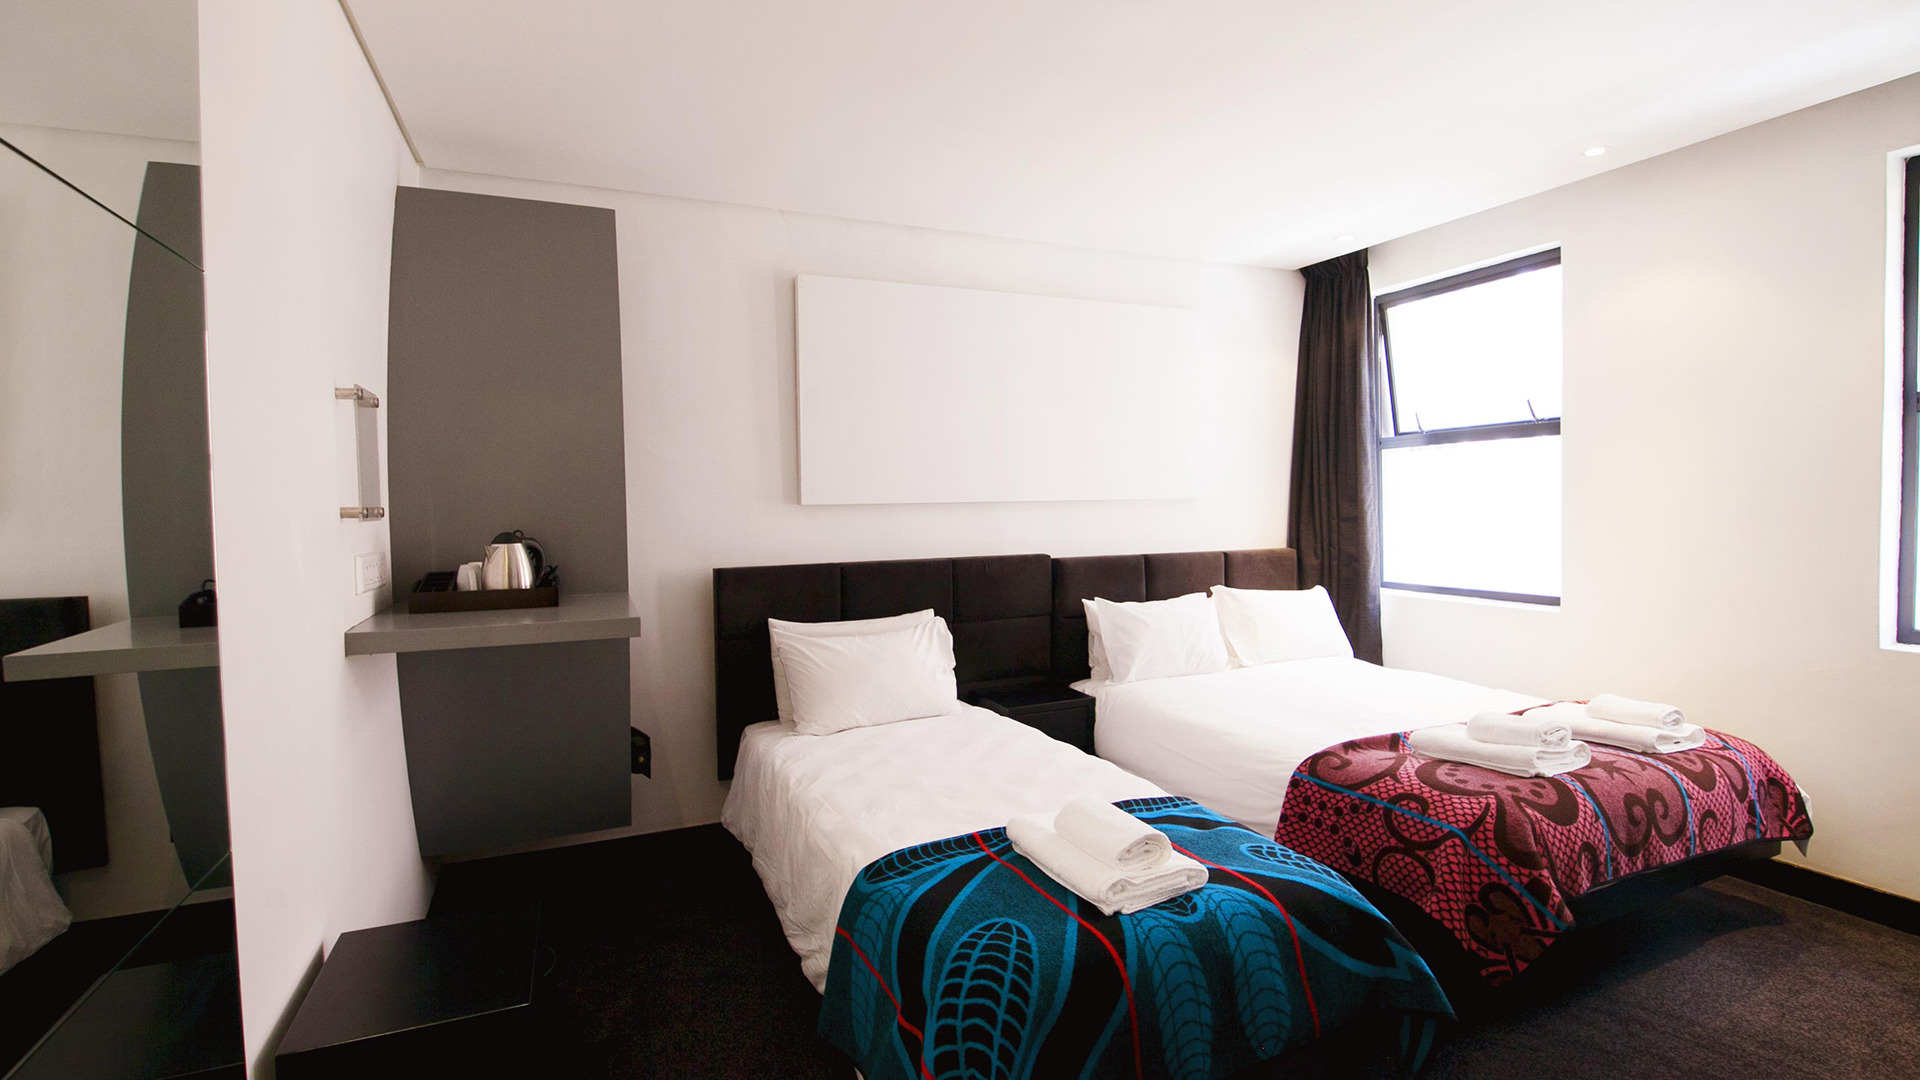 JOBURG: Pay 3, Stay 4 nights + Free Airport shuttle